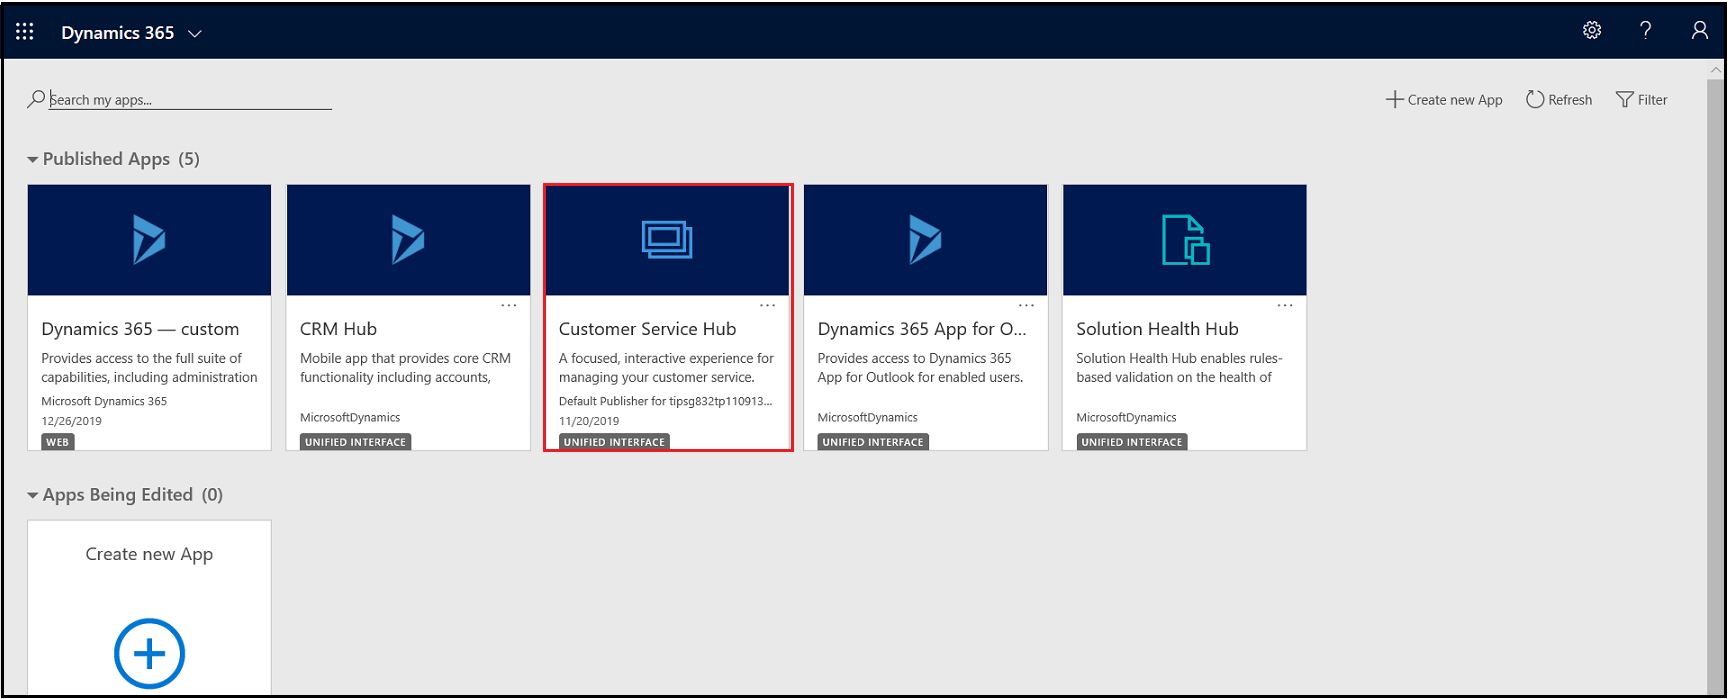 Learn the basics of the Customer Service Hub in Dynamics 365